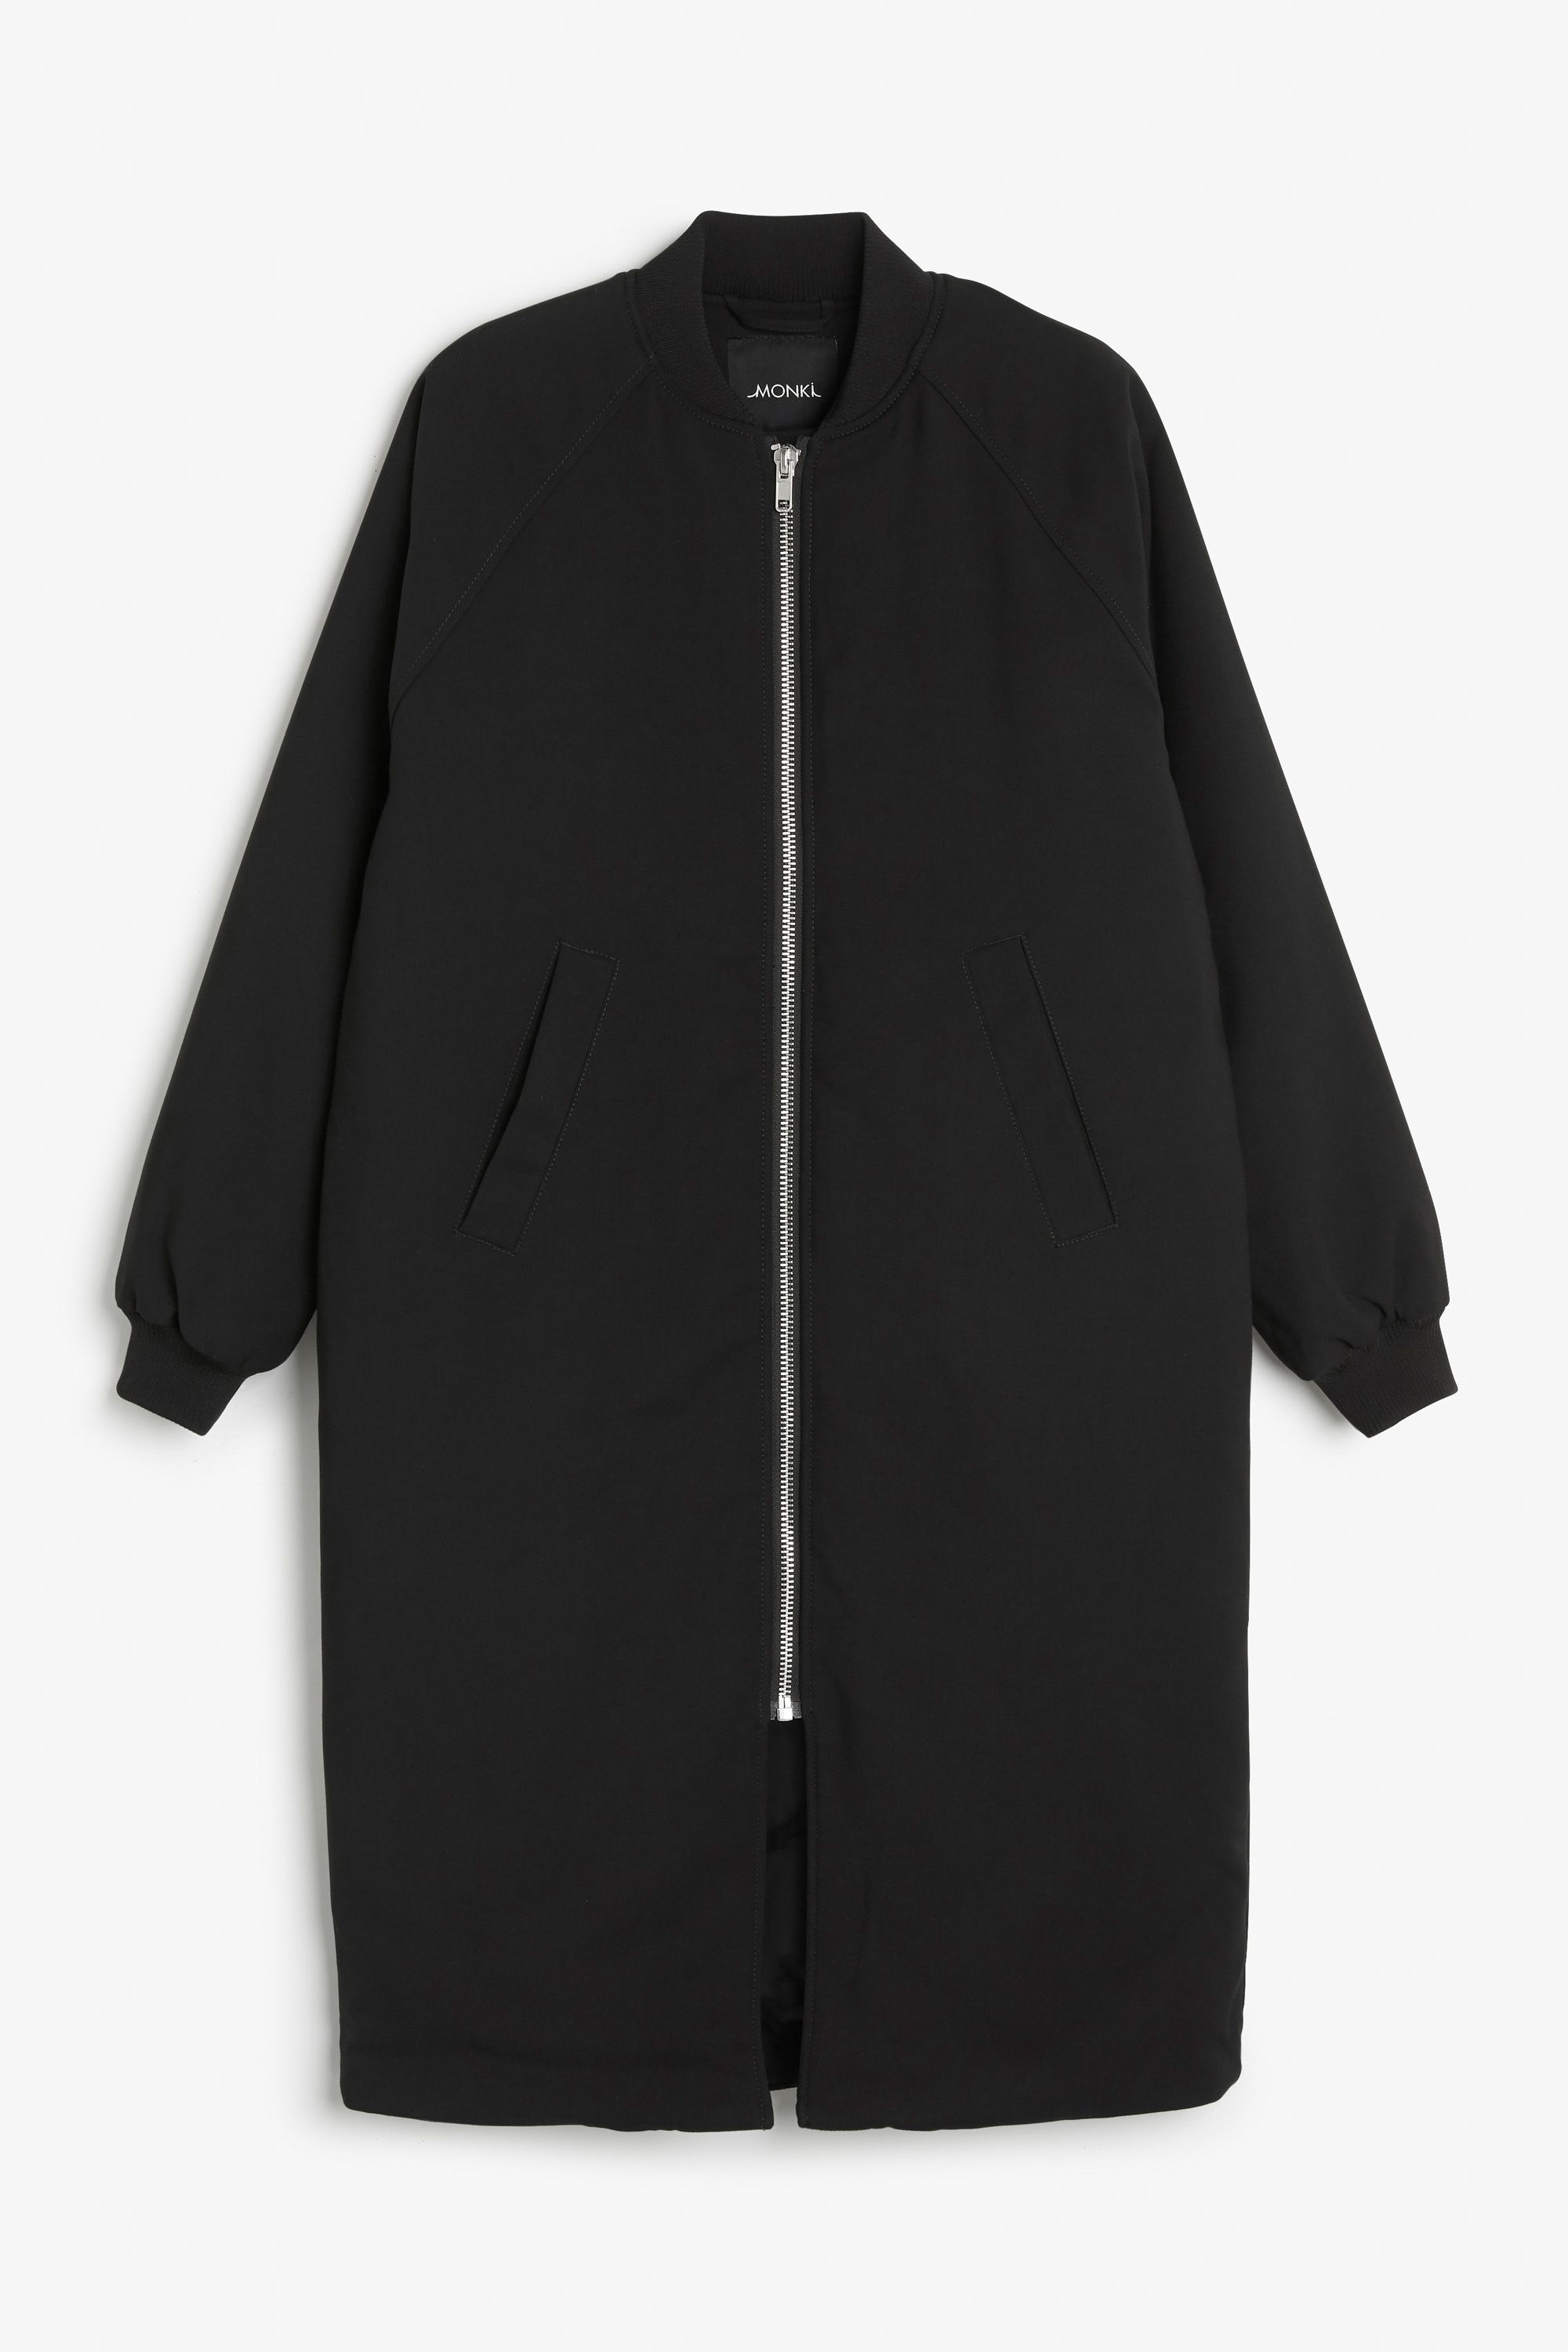 Monki Image 1 Of Long Bomber Jacket In Black Long Bomber Jacket Clothes Blouse Outfit Work [ 3000 x 2000 Pixel ]